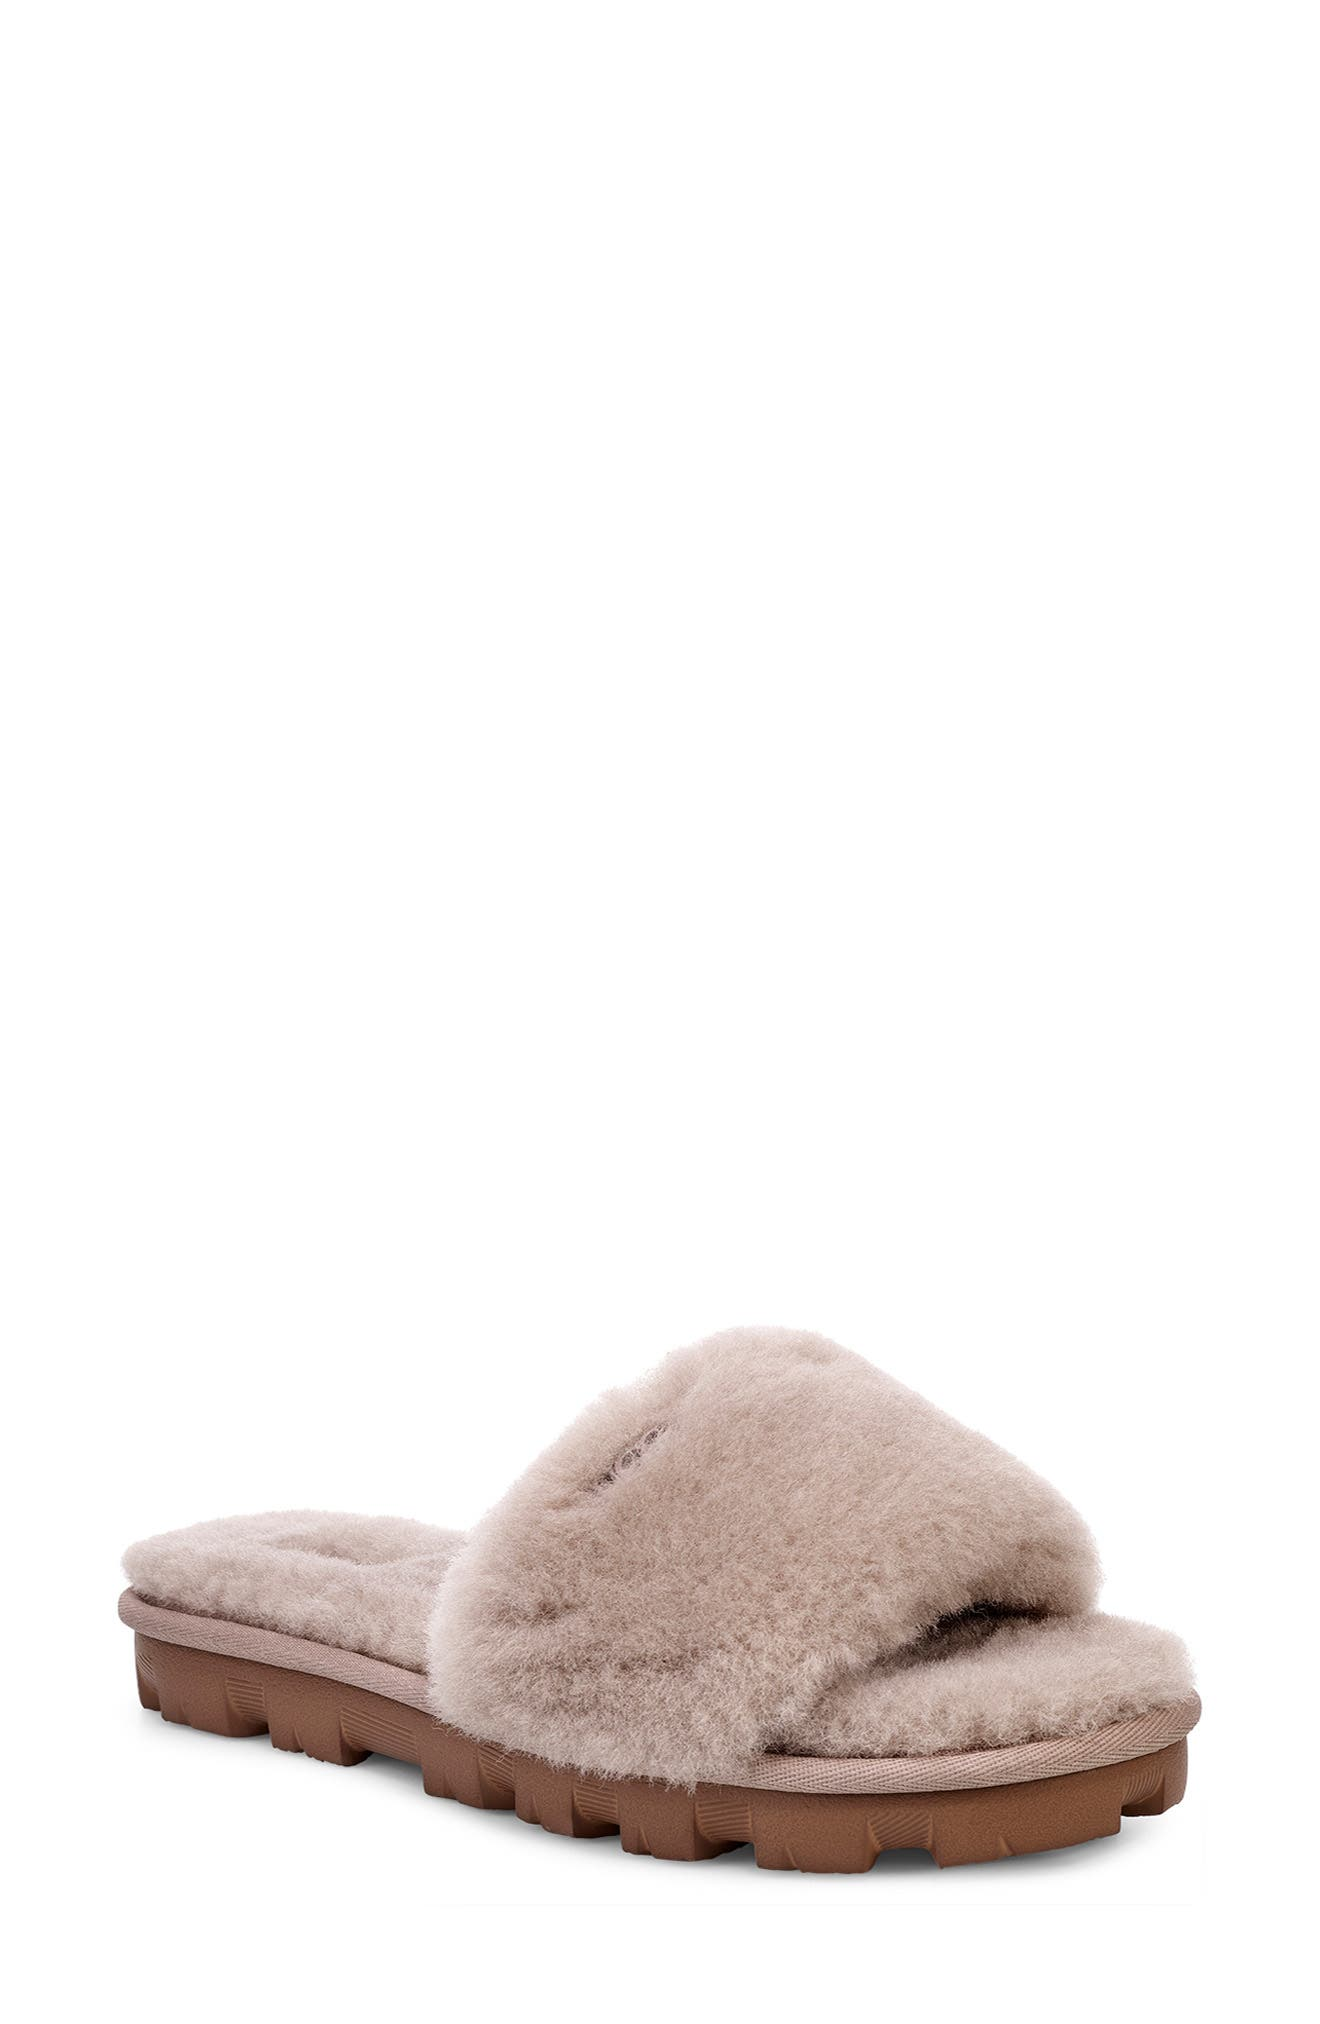 7344268b0a6 Women's Slides UGG® Shoes | Nordstrom